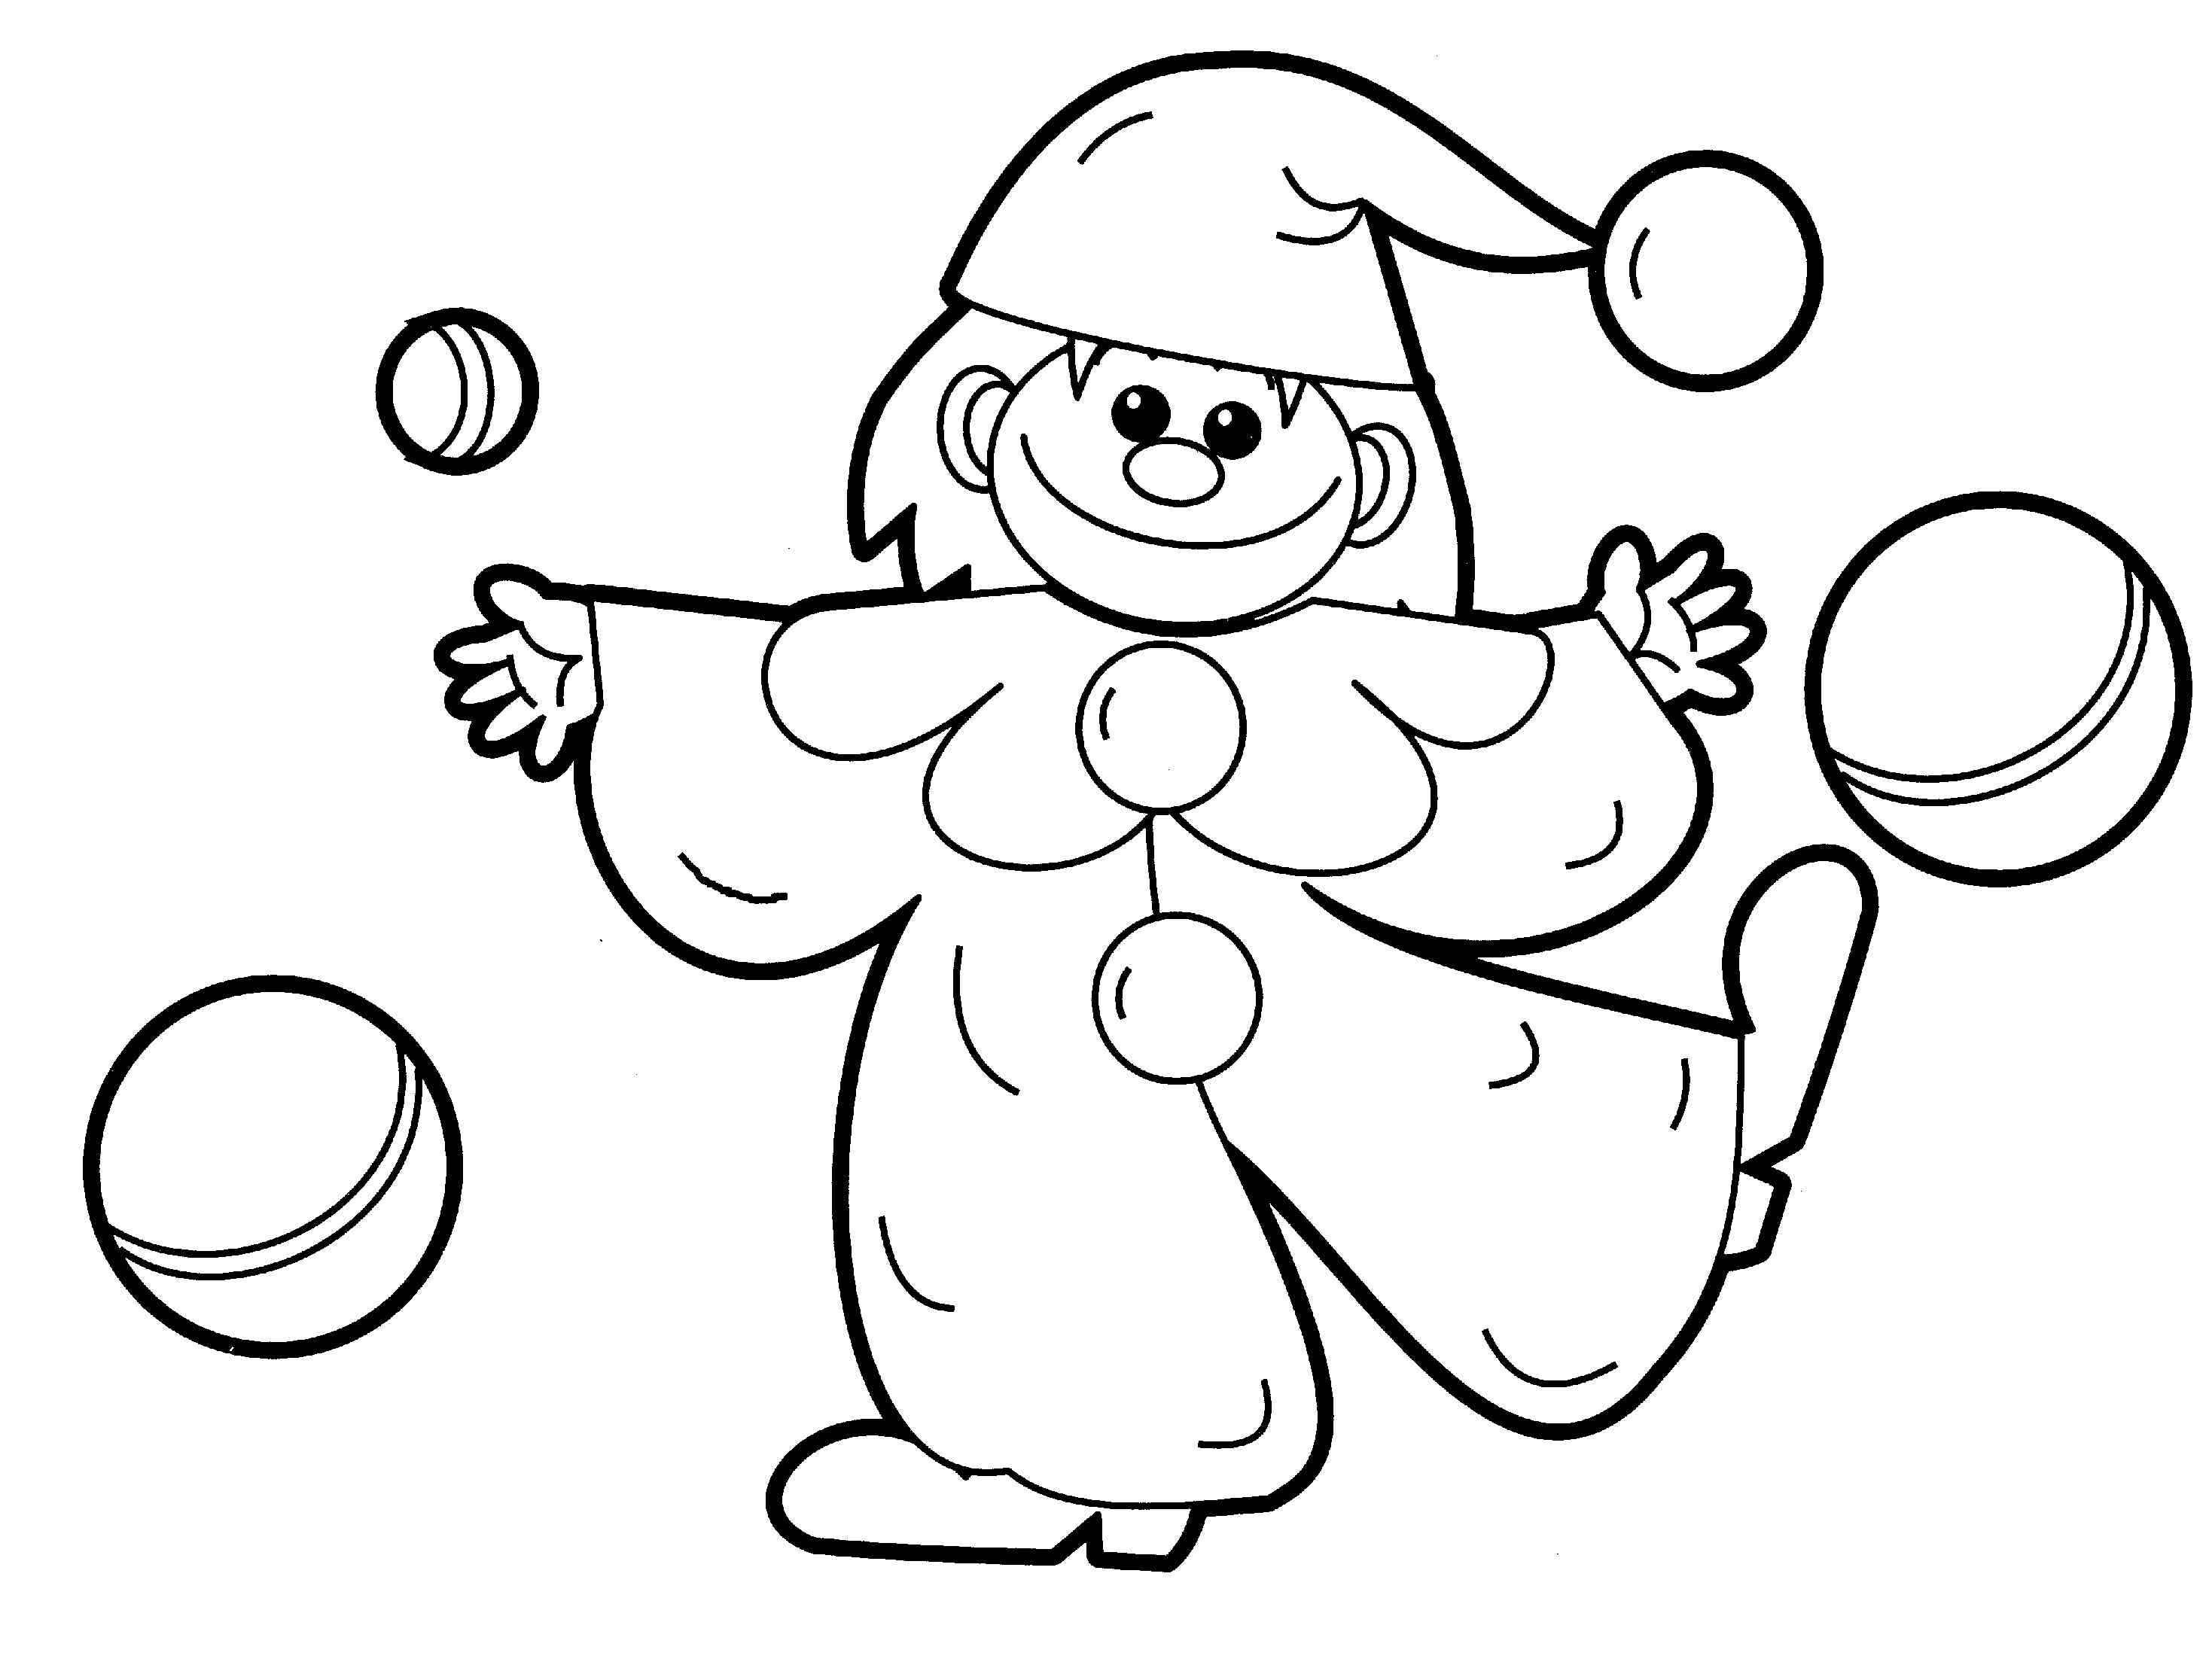 Toys coloring pages best coloring pages for kids Coloring book for toddlers